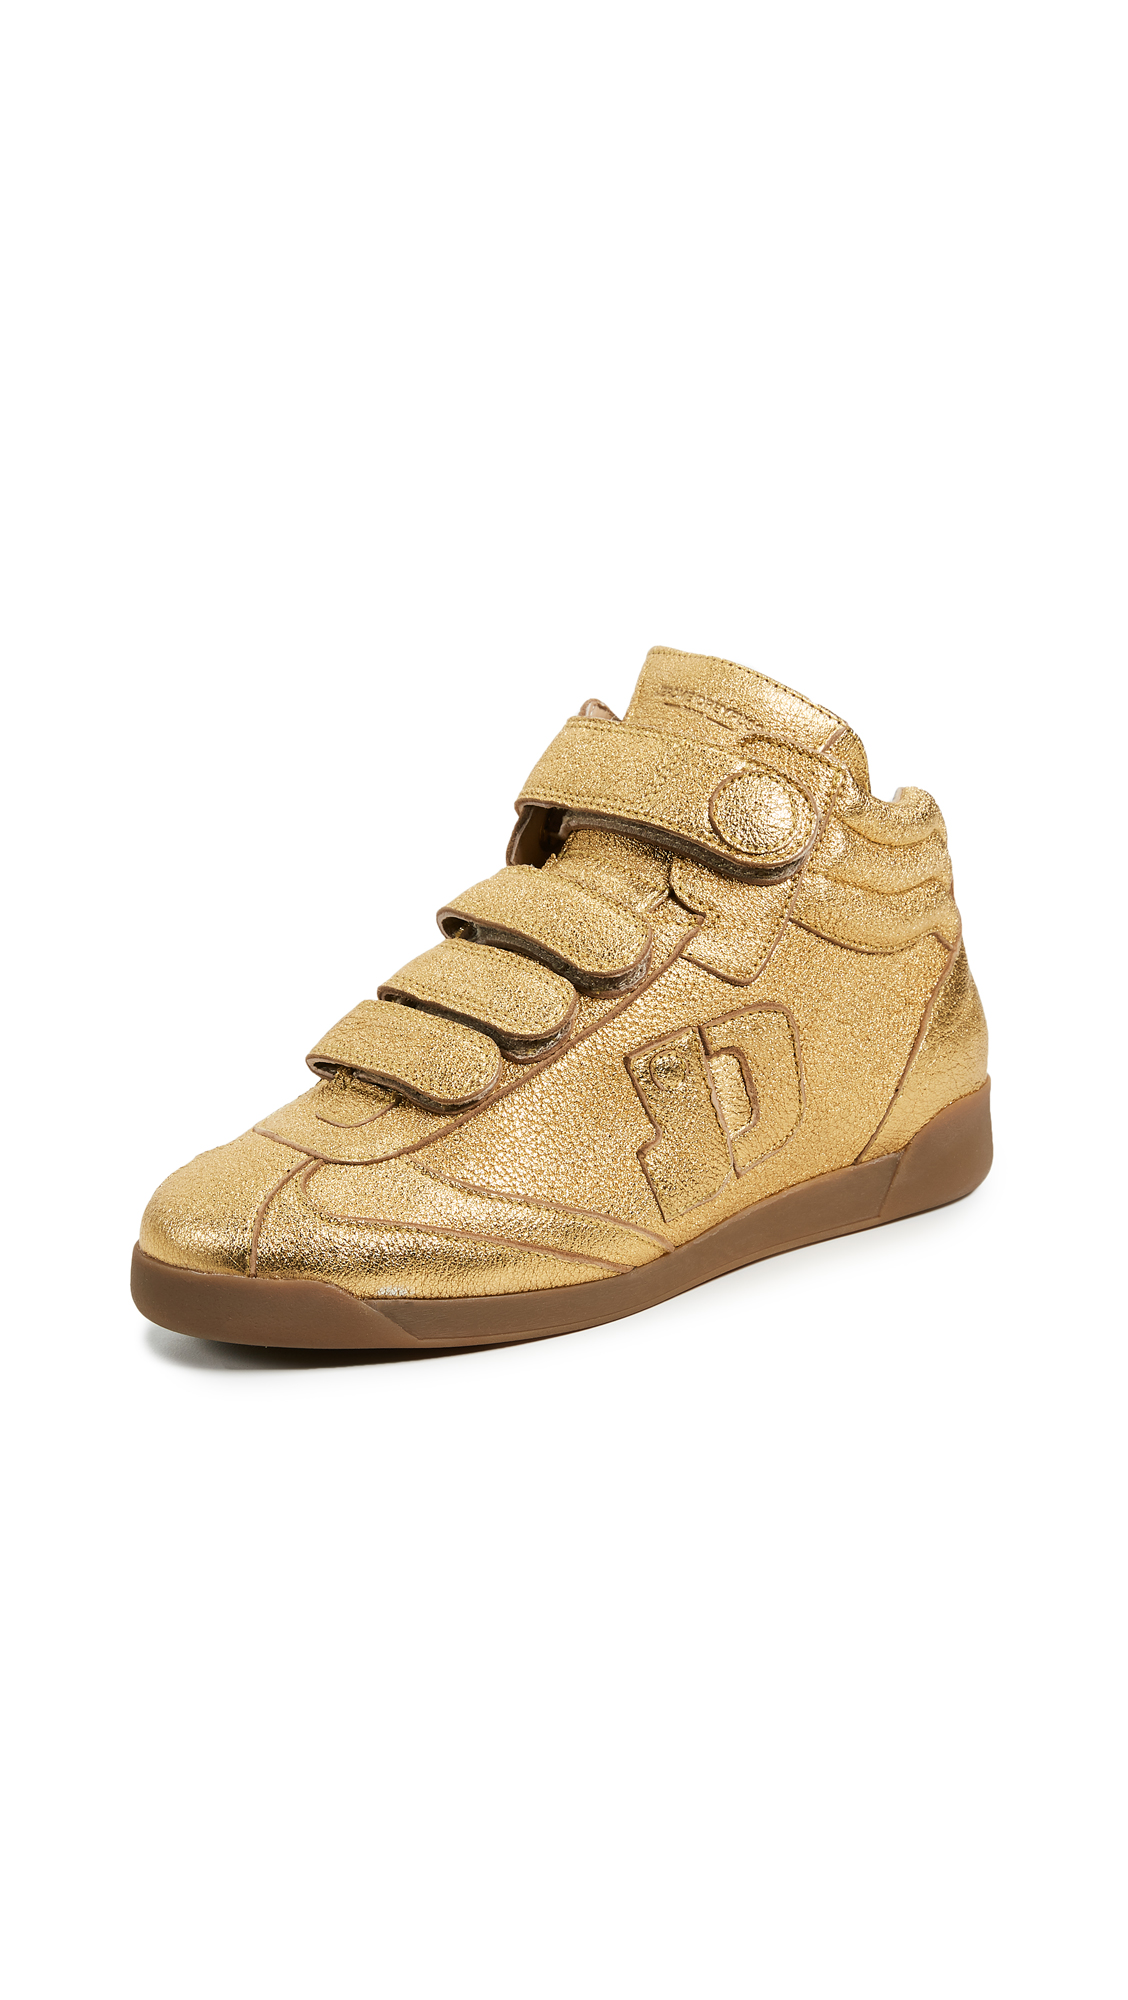 Jerome Dreyfuss Davina Sneakers - Gold Matte